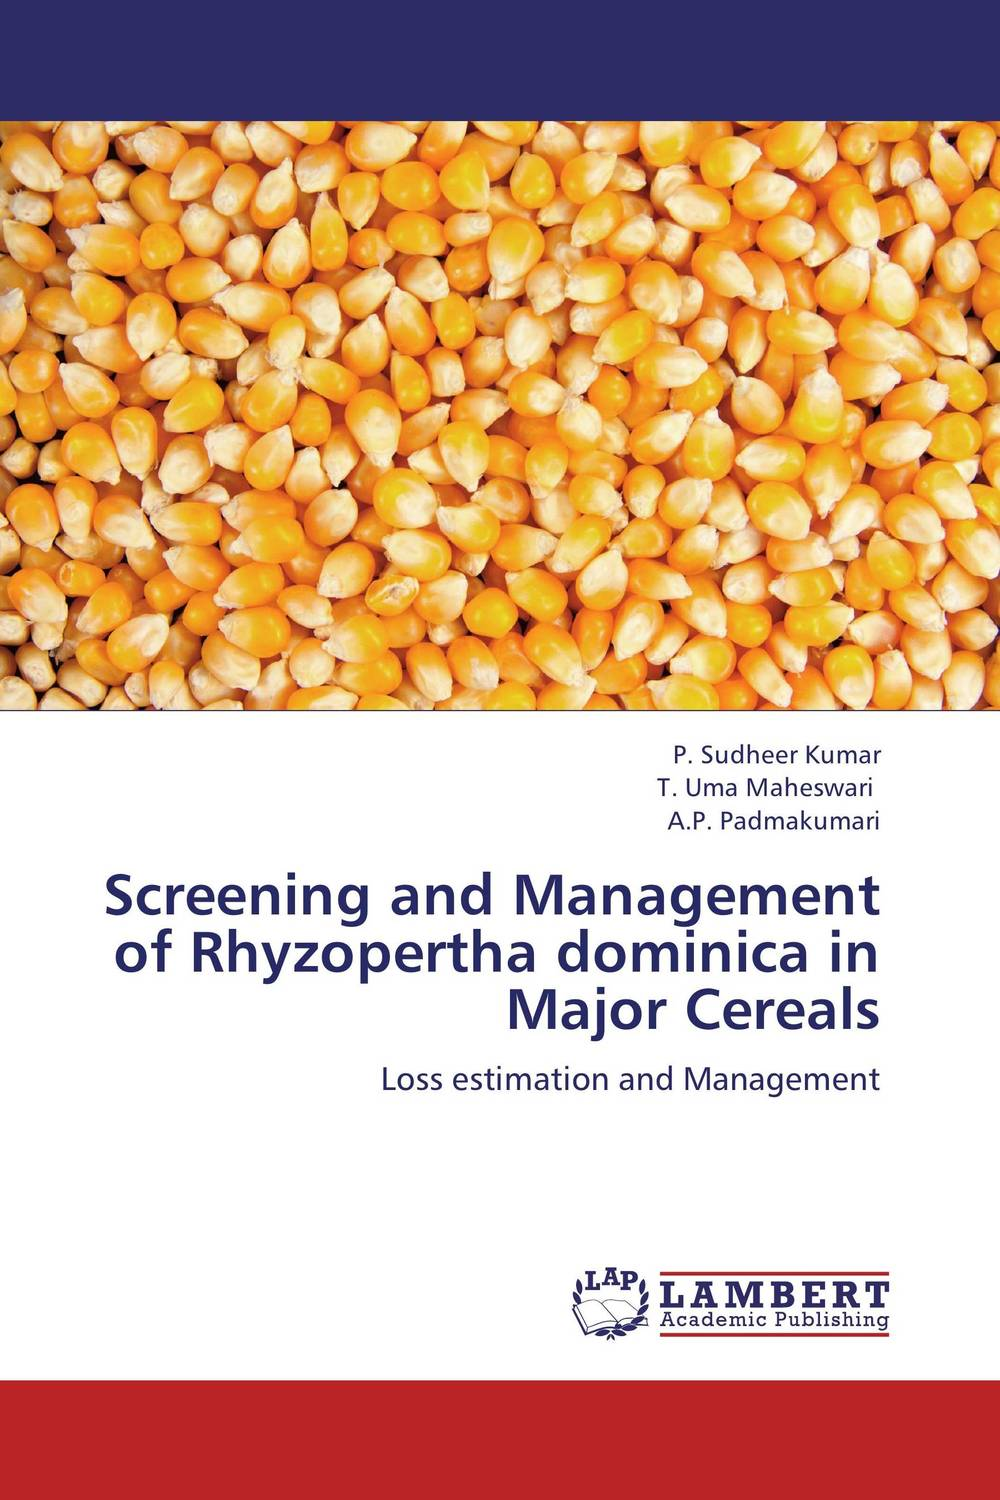 Screening and Management of Rhyzopertha dominica in Major Cereals